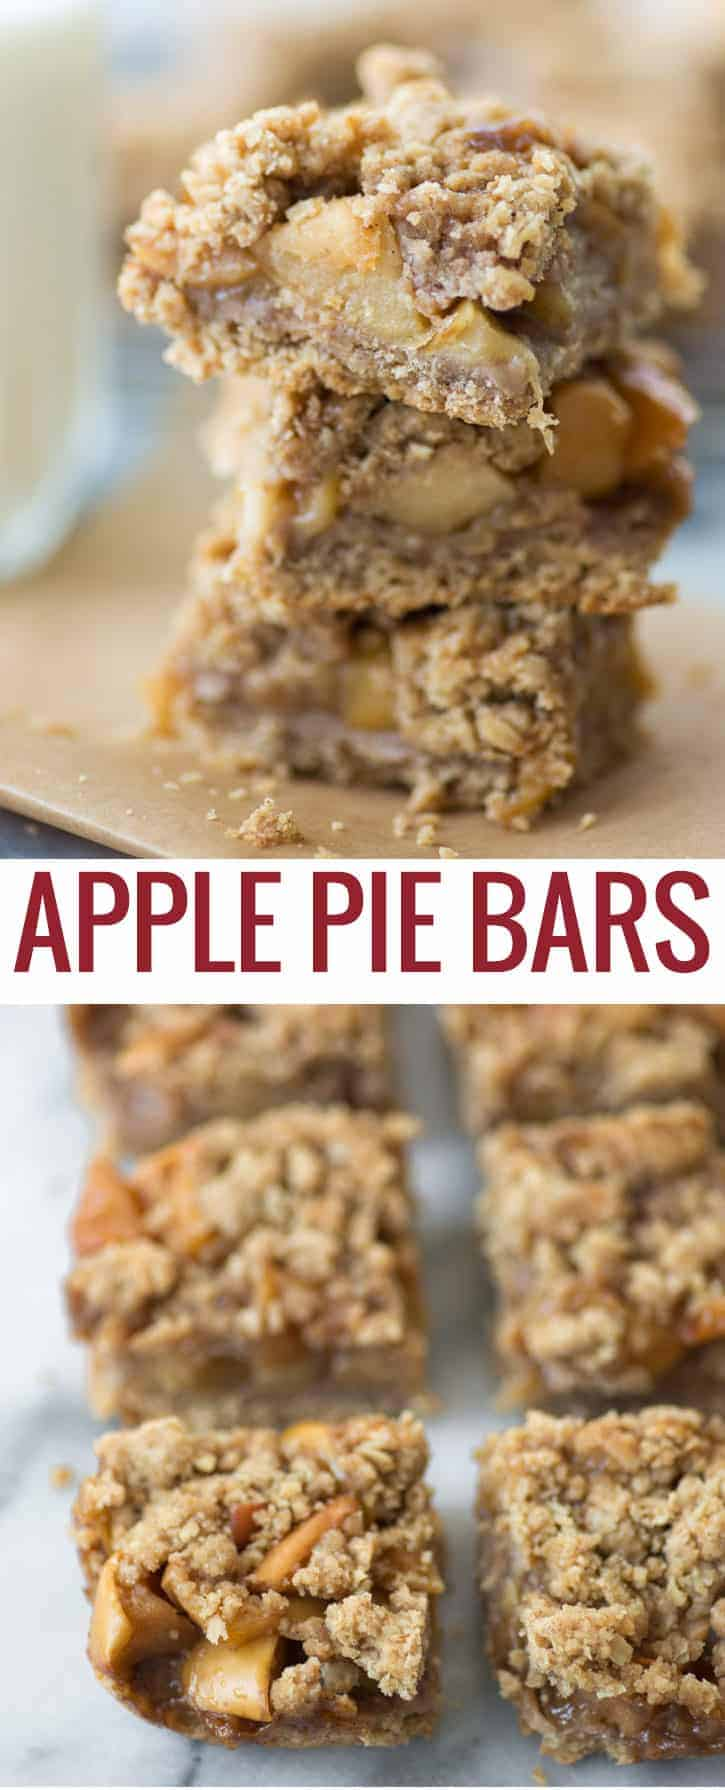 Apple Pie Bars! These bars taste just like apple pie- with a fraction of the work! Whole-wheat and oat crust with seasoned apples.   www.delishknowledge.com